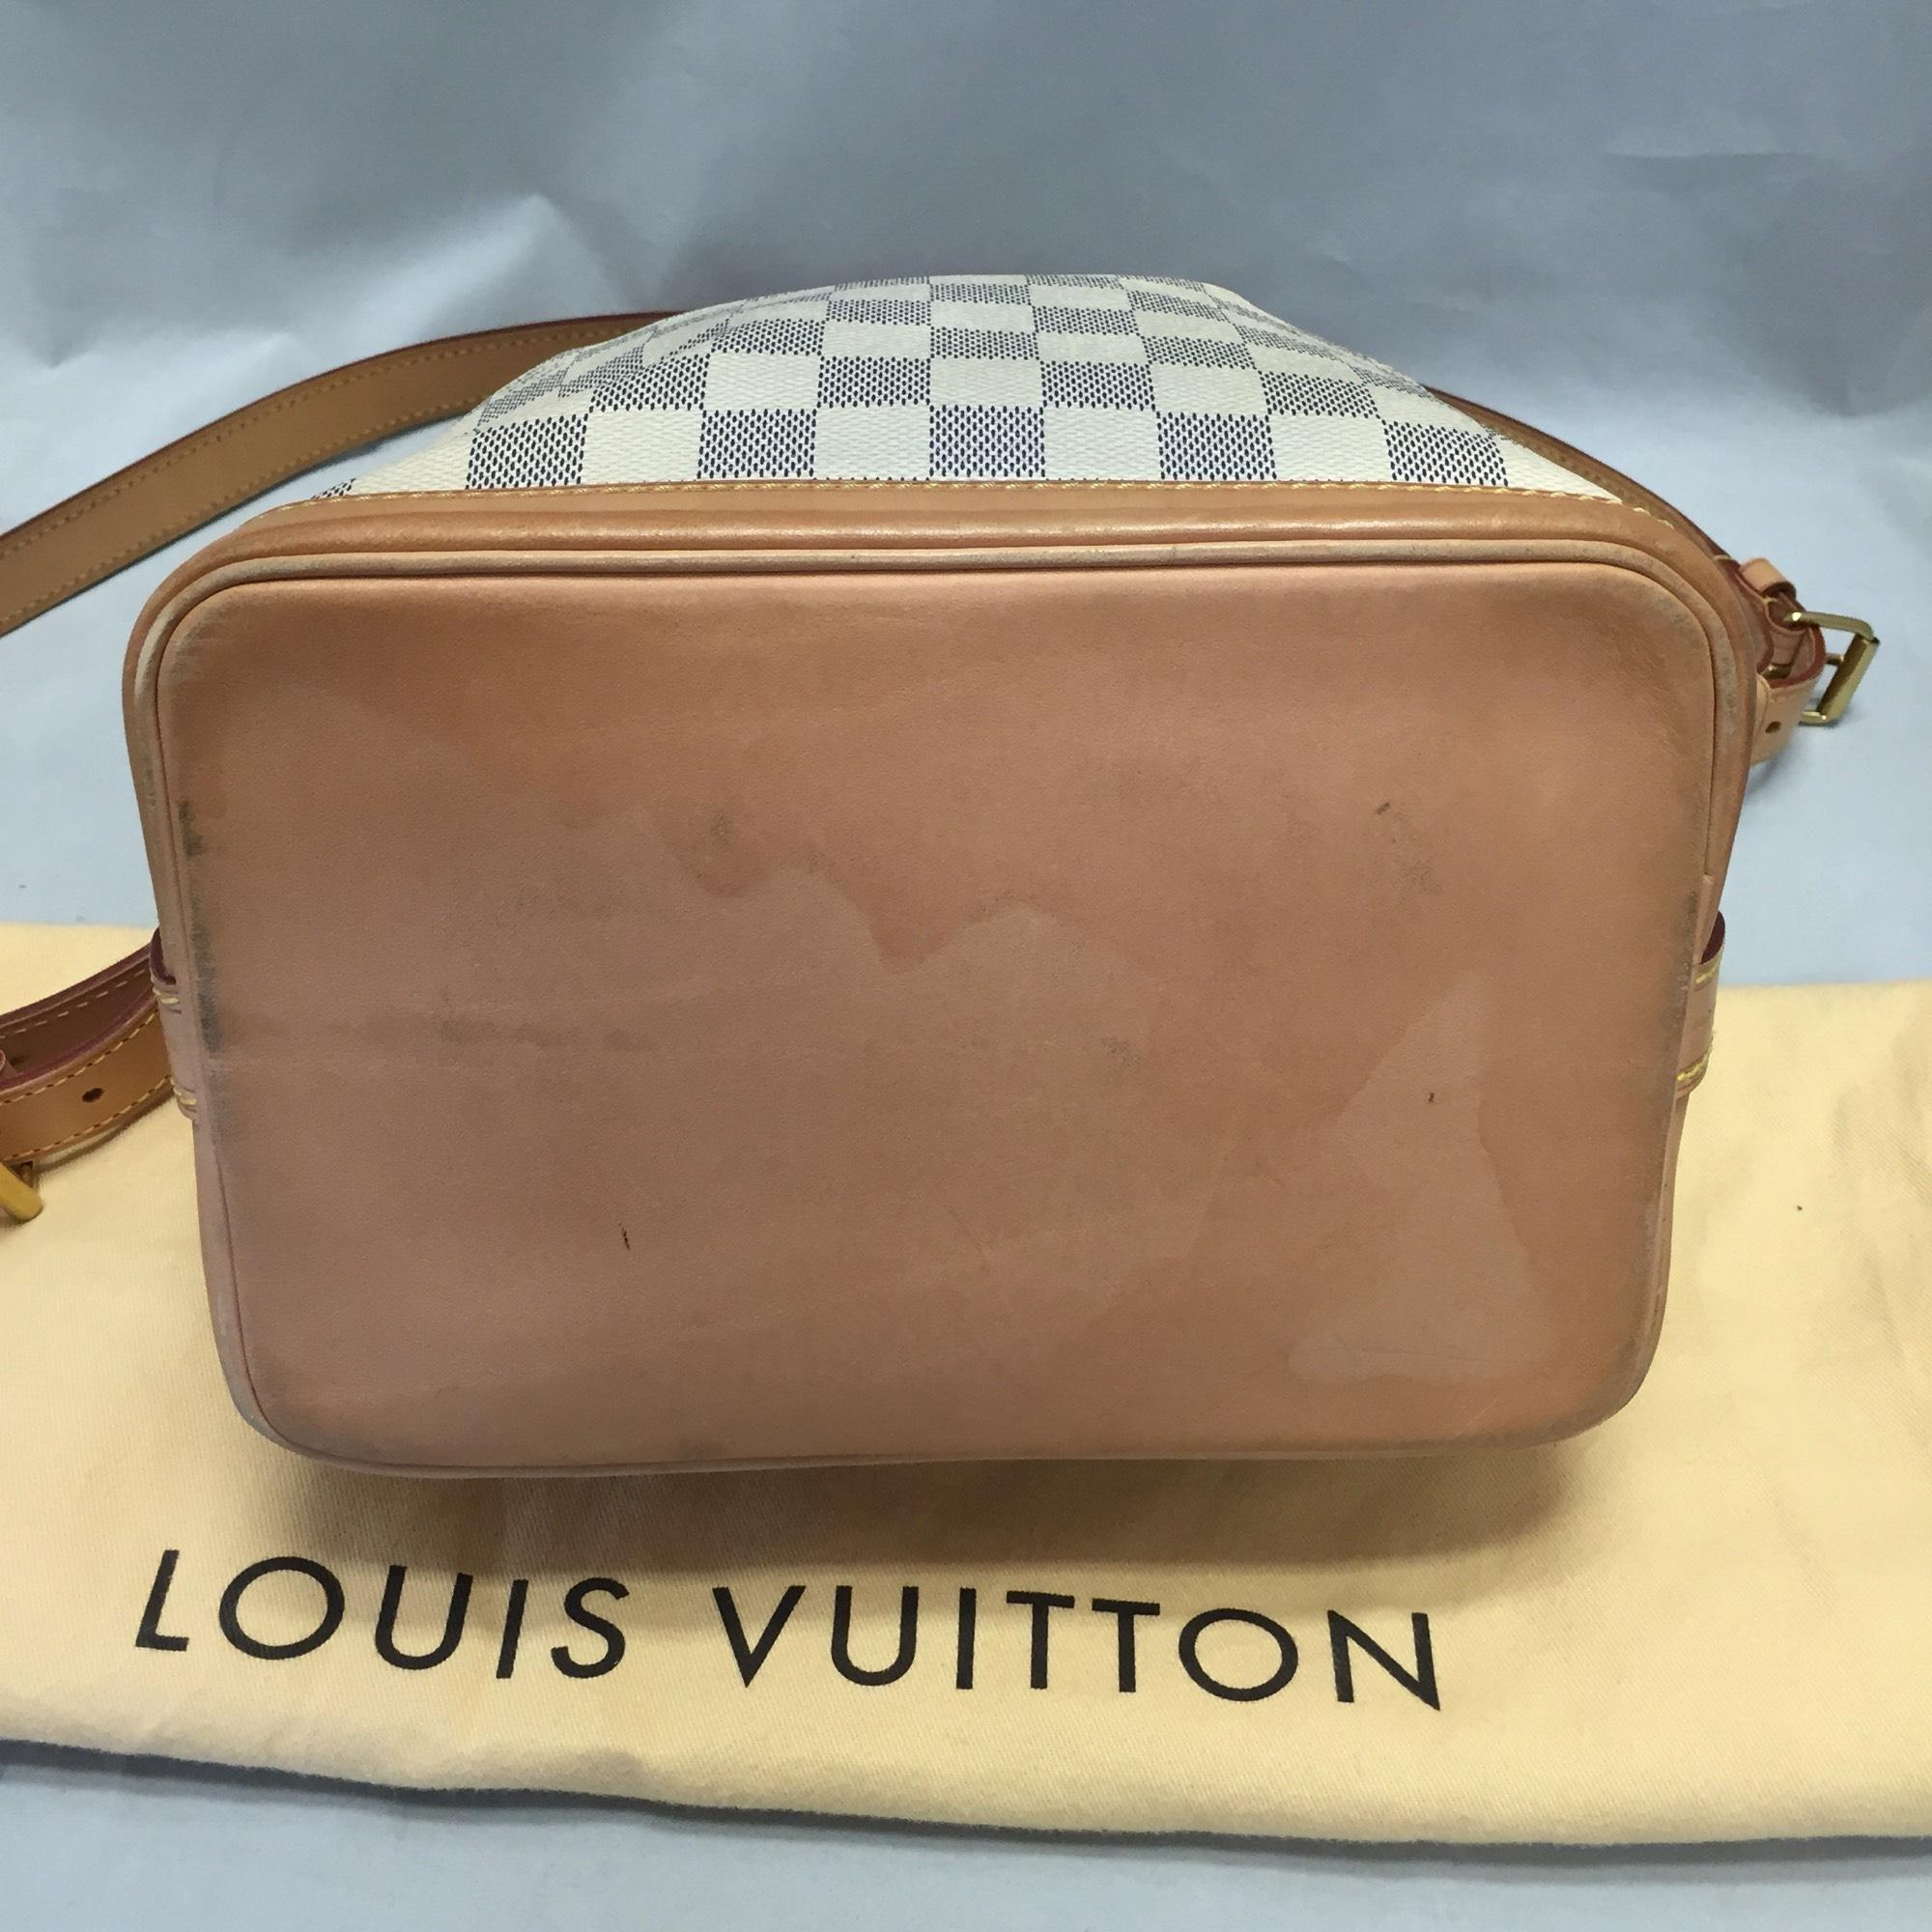 Date code on louis vuitton in Perth